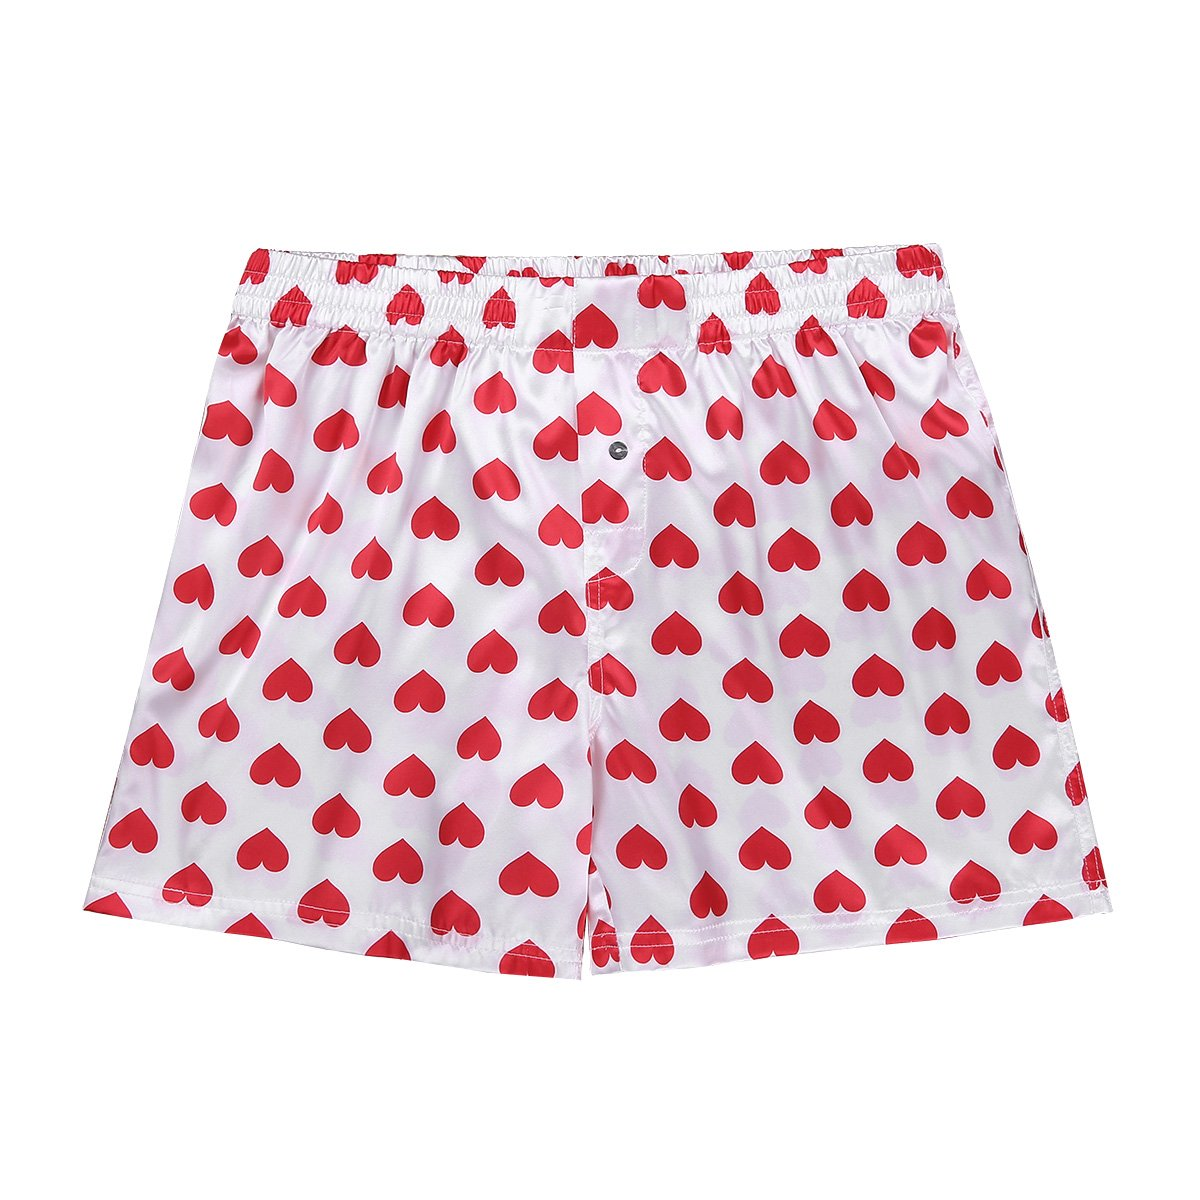 inhzoy Mens Love Heart Lips Print Shiny Silky Satin Boxer Shorts Loose Lounge Sports Trunks